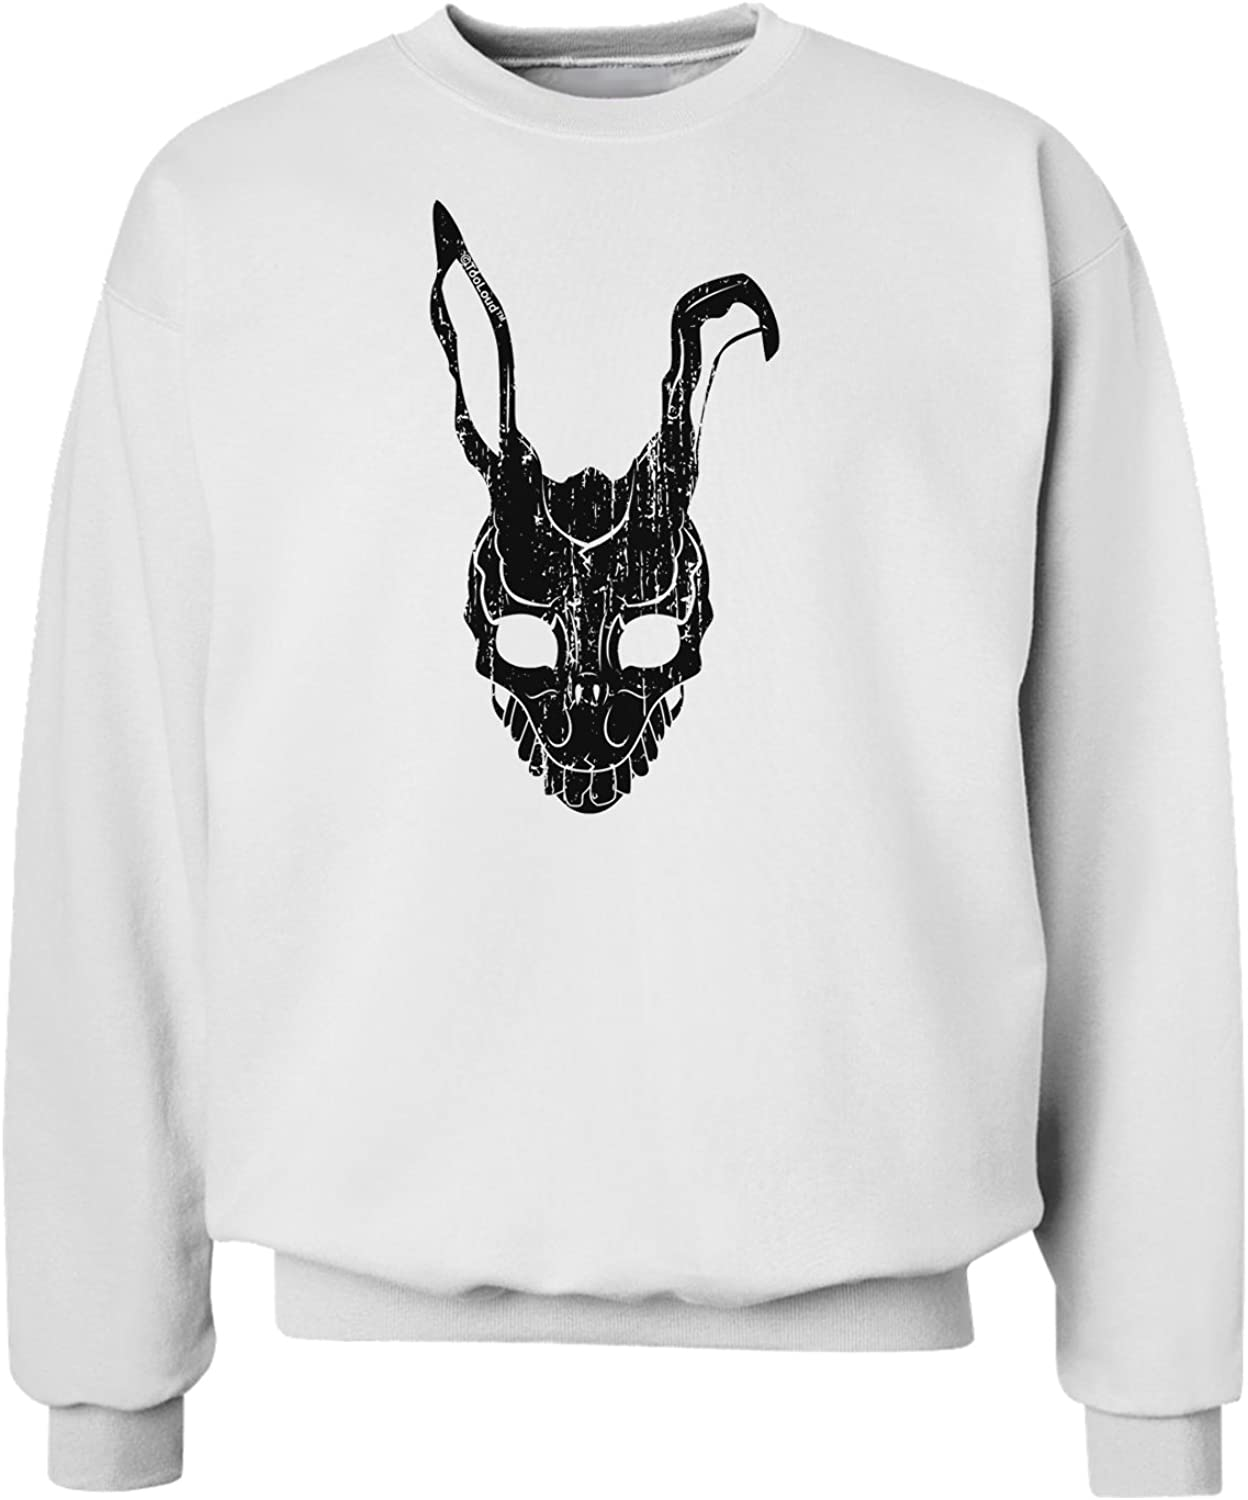 TOOLOUD Scary Bunny Face Black Distressed Sweatshirt